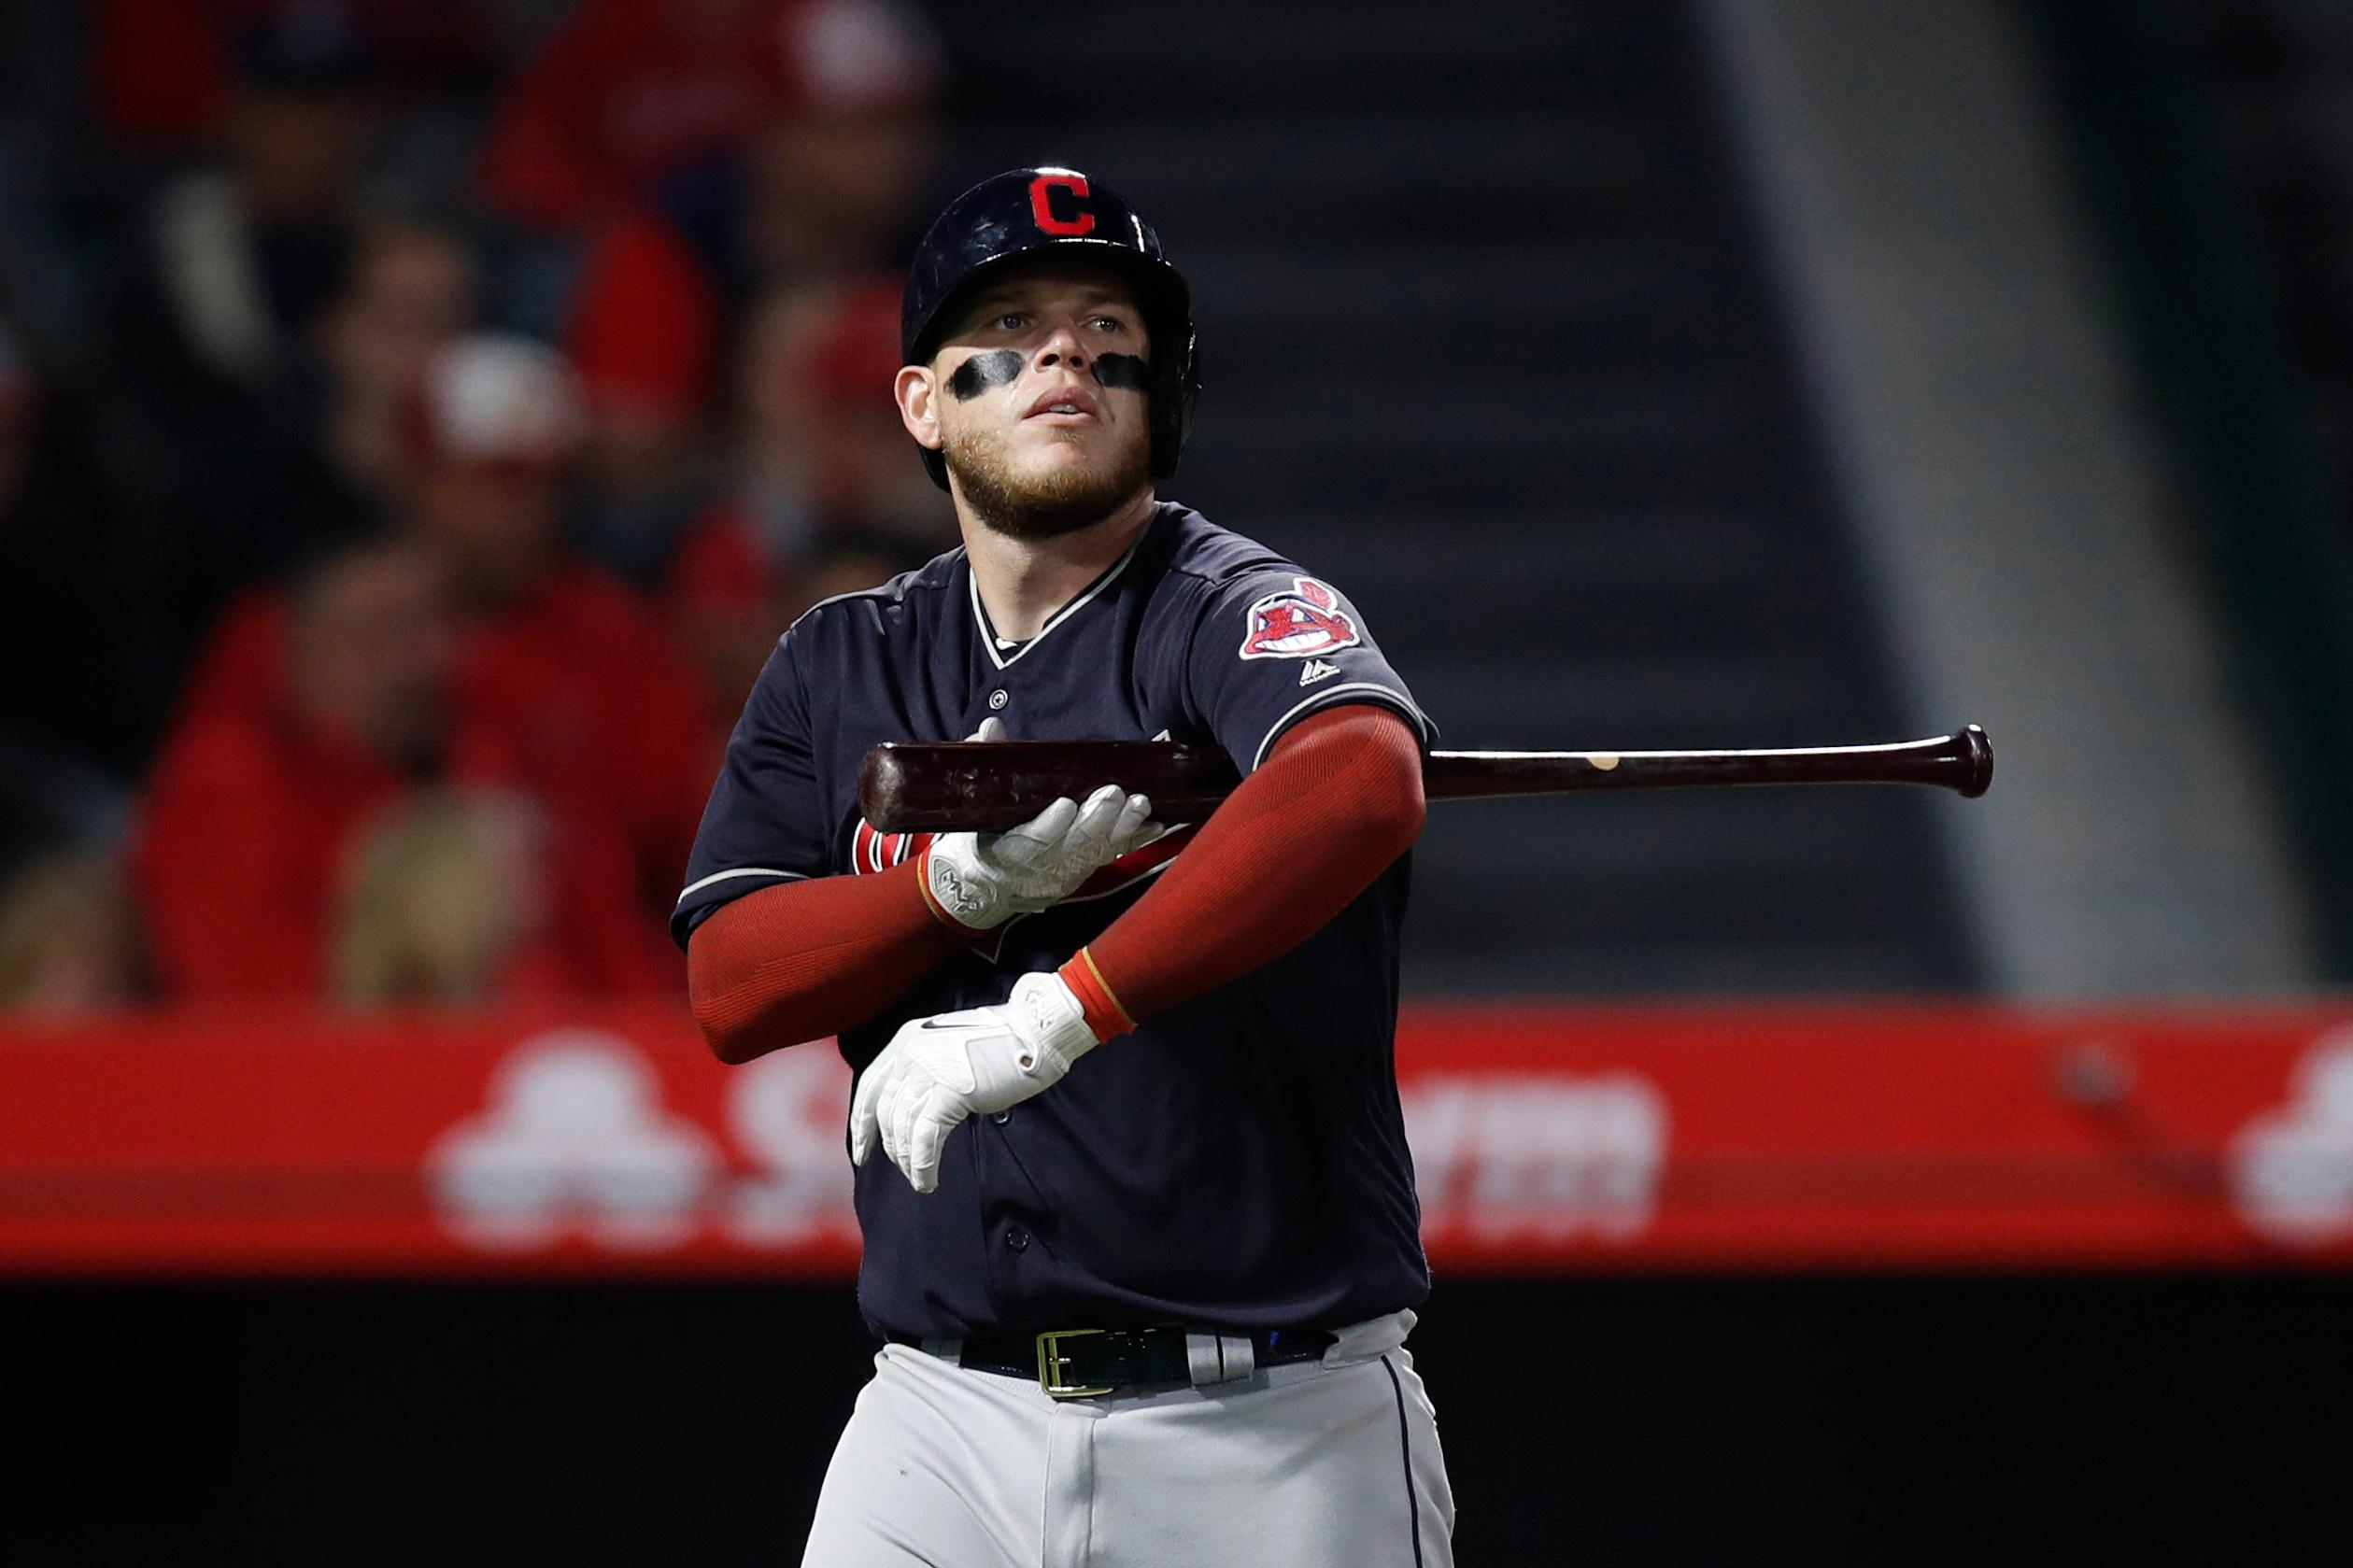 Cleveland Indians' Roberto Perez walks off the field after striking out during the sixth inning of a baseball game against the Los Angeles Angels, Tuesday, April 3, 2018, in Anaheim, Calif. (AP Photo/Jae C. Hong)